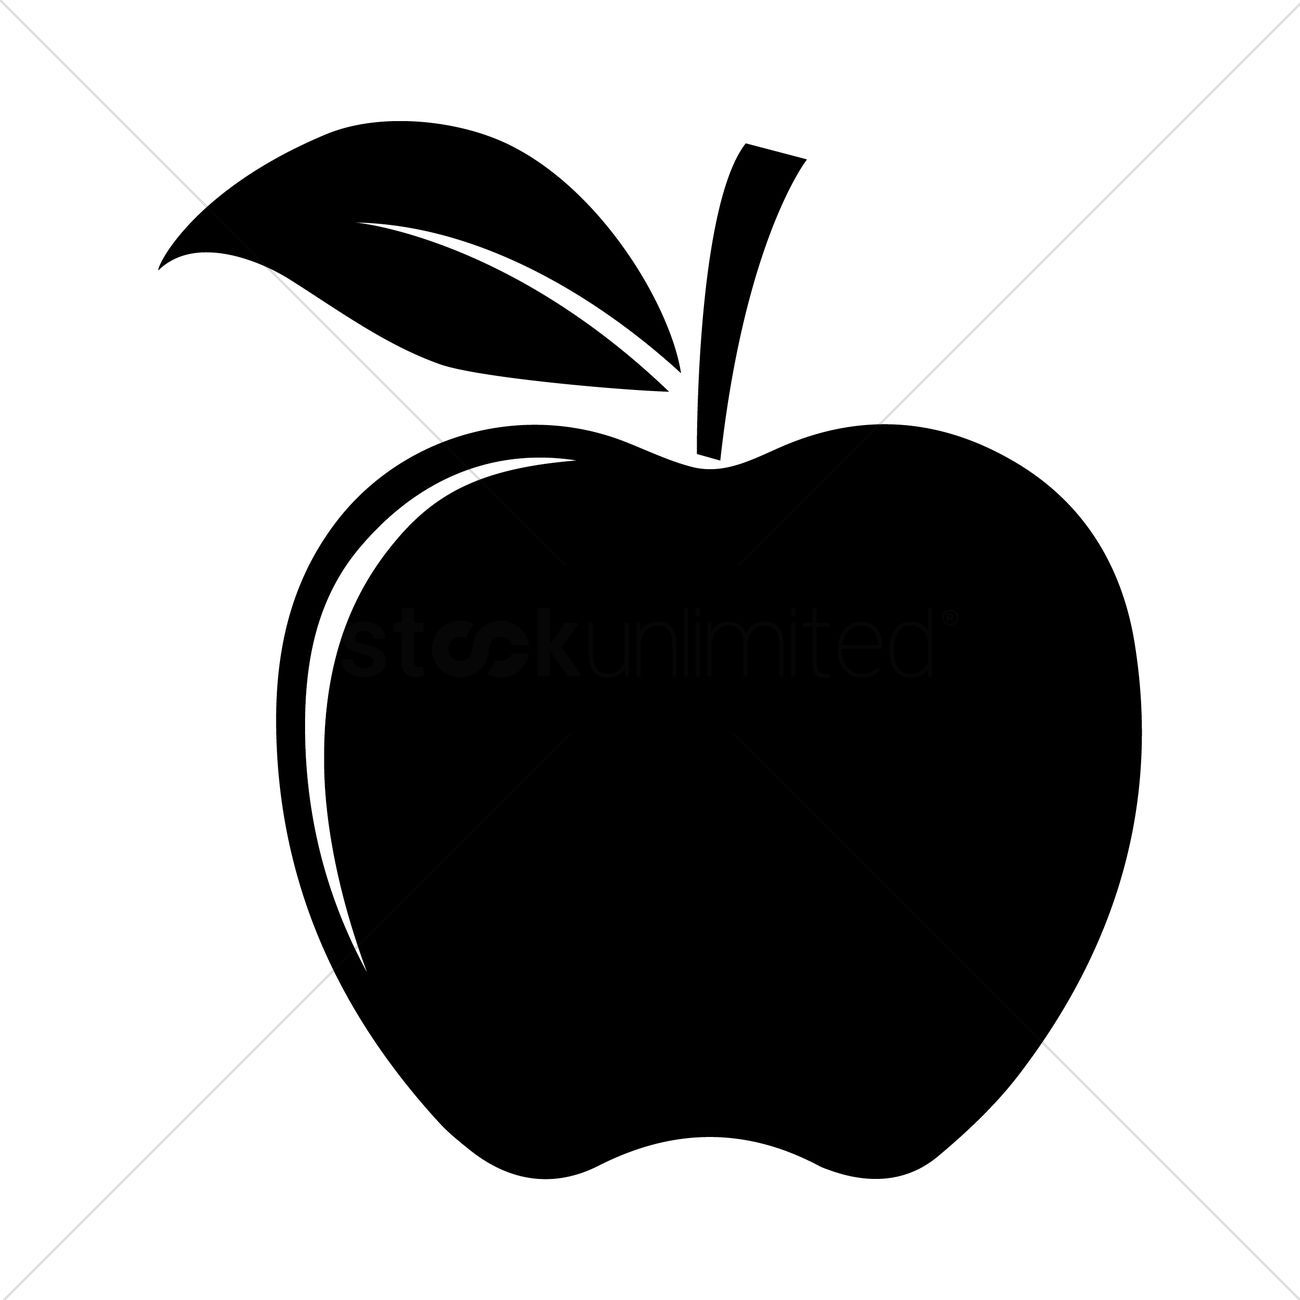 1300x1300 Apple Silhouette Vector Image